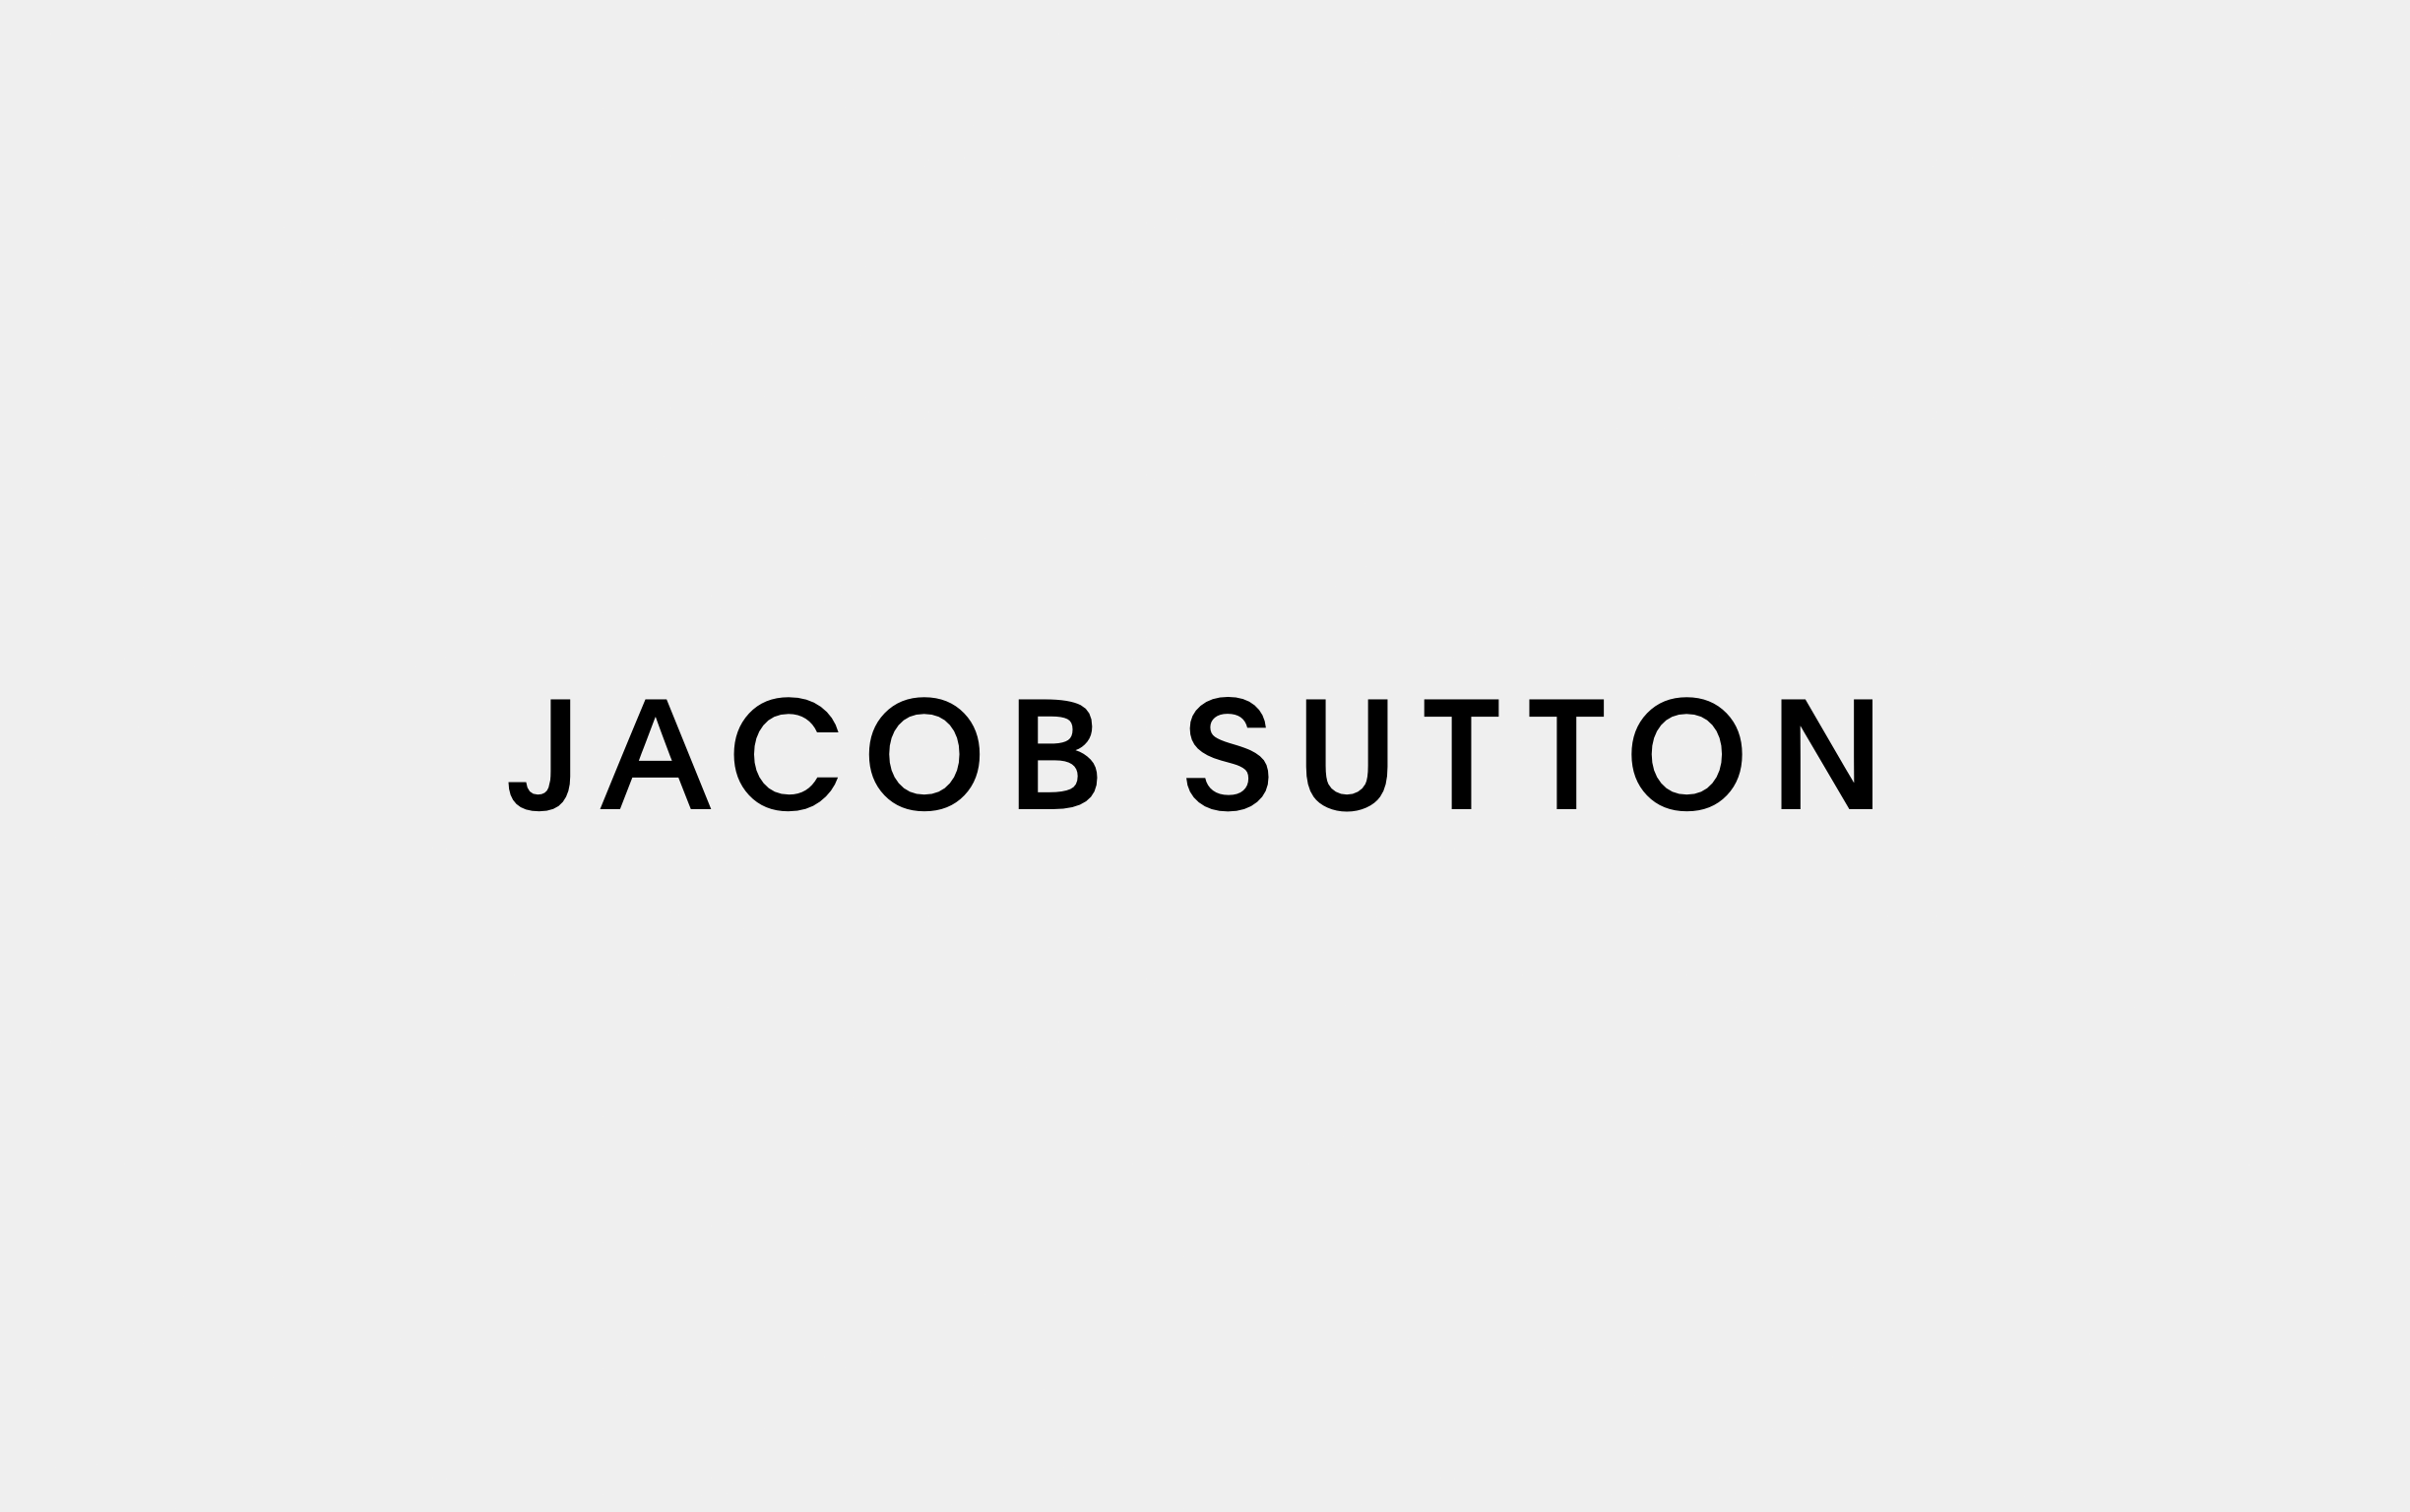 Jacob Sutton by VERDE